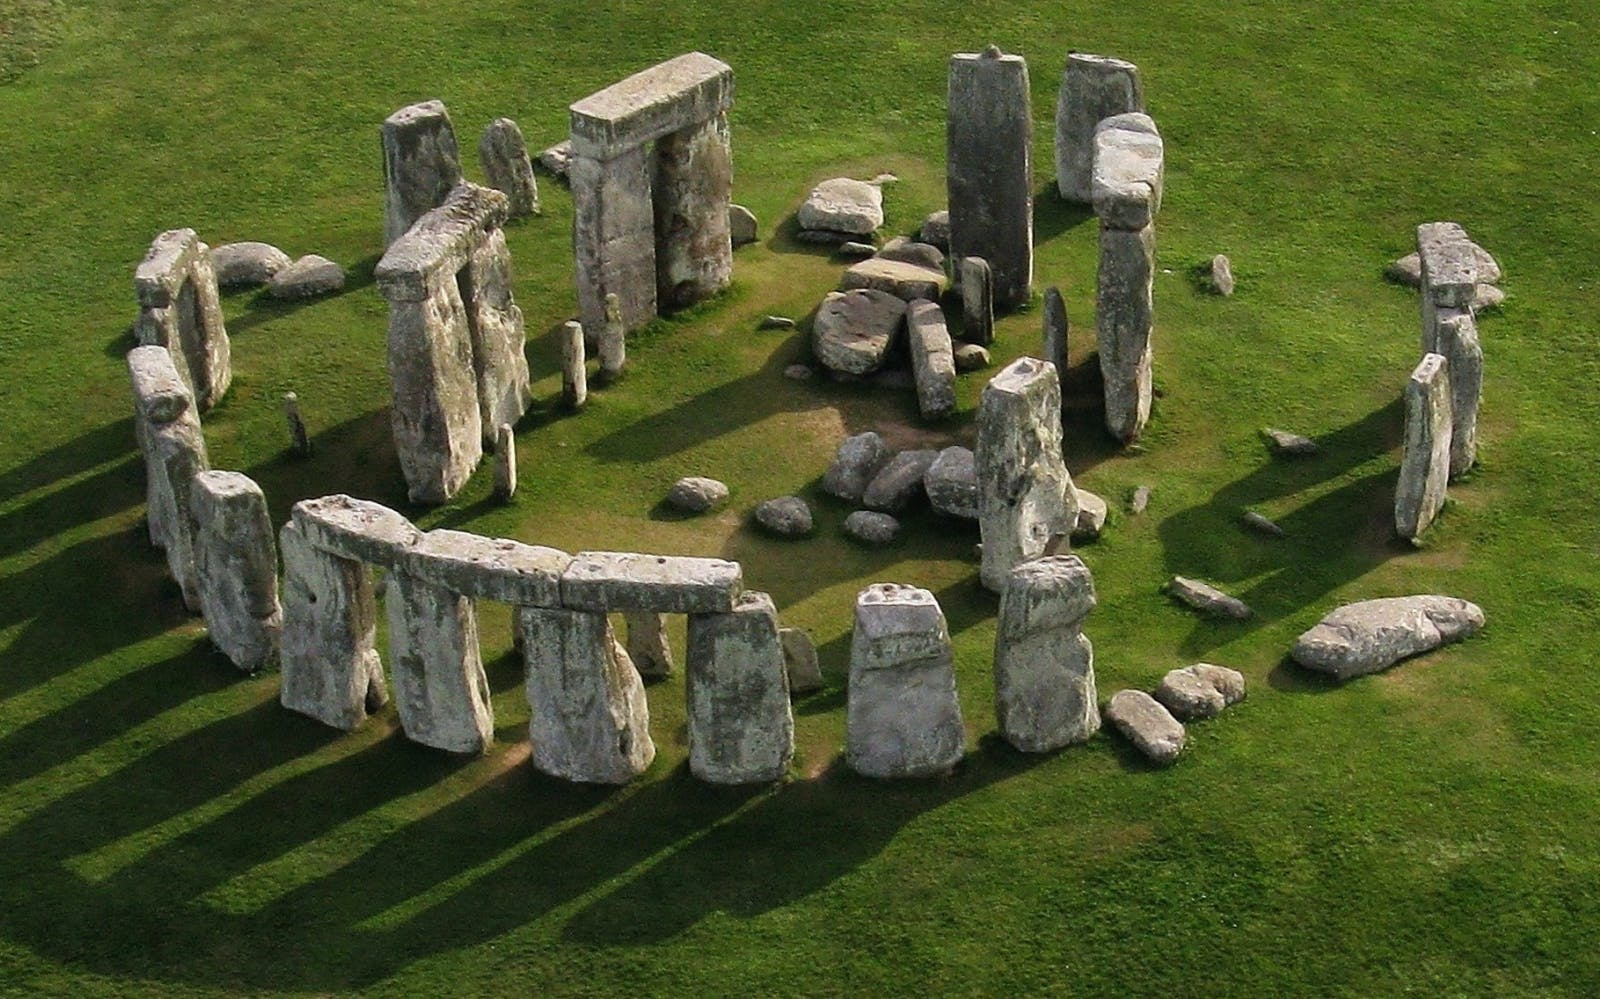 Best Day Trips from London - Stonehenge Tours from London - Half Day